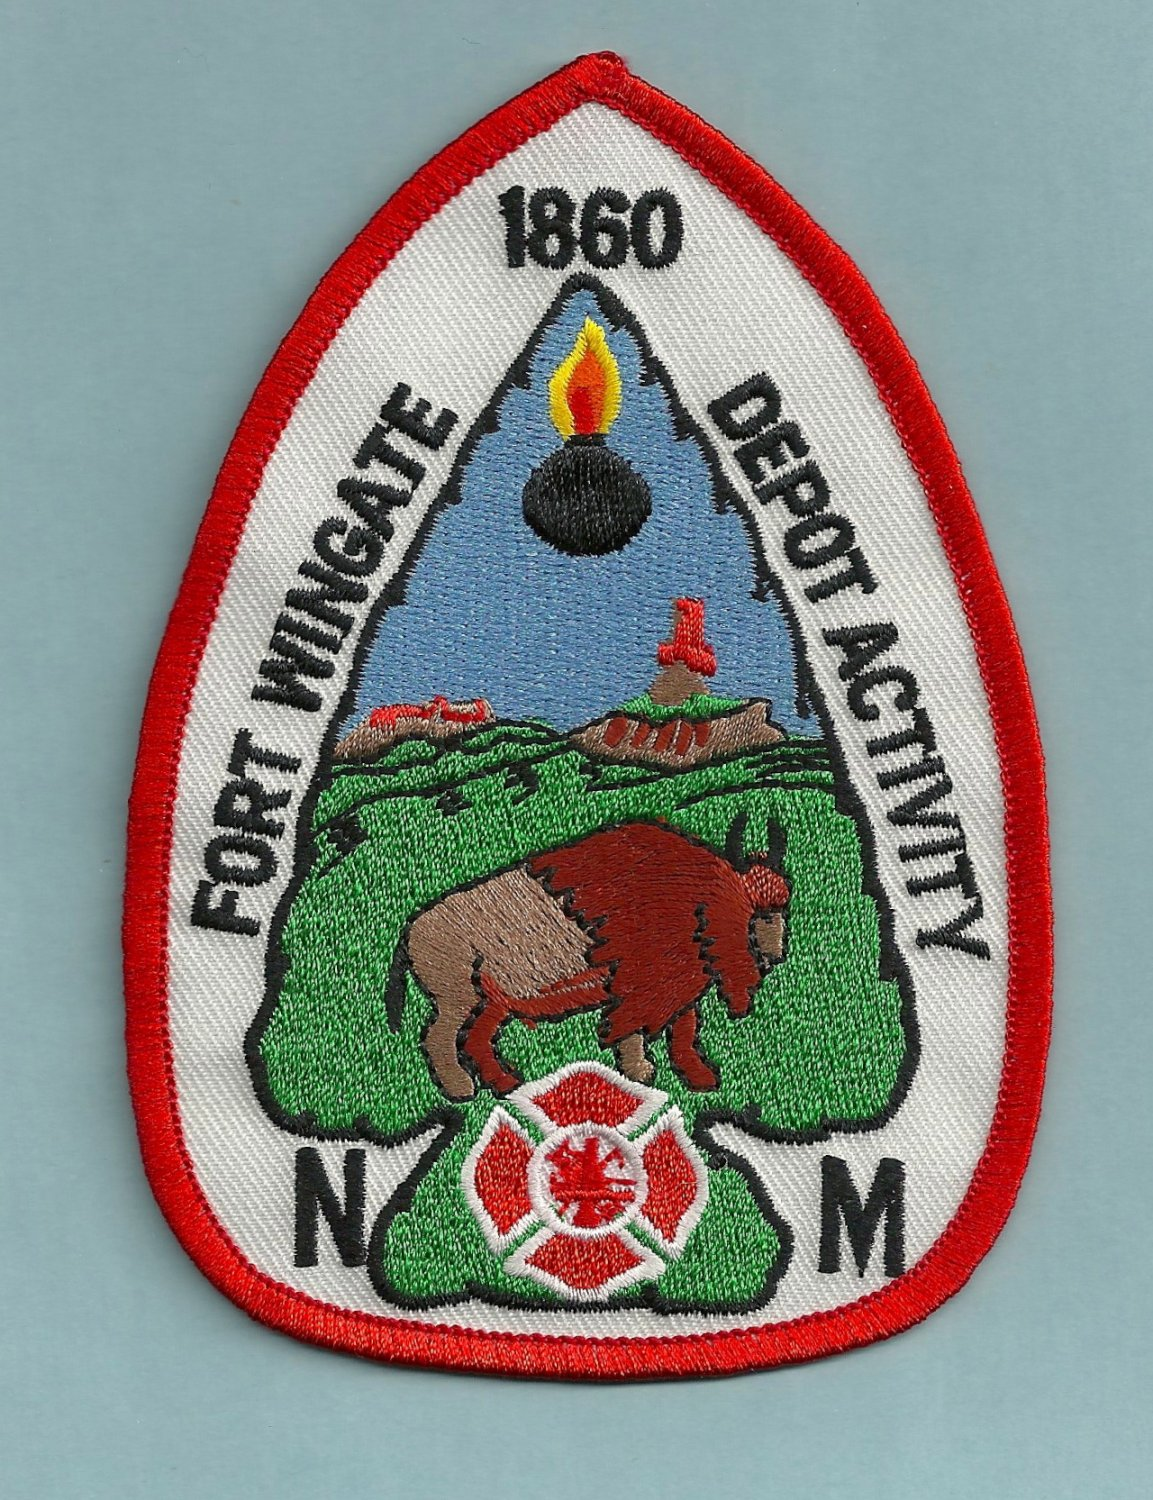 FORT WINGATE ARMY BASE NEW MEXICO FIRE RESCUE PATCH